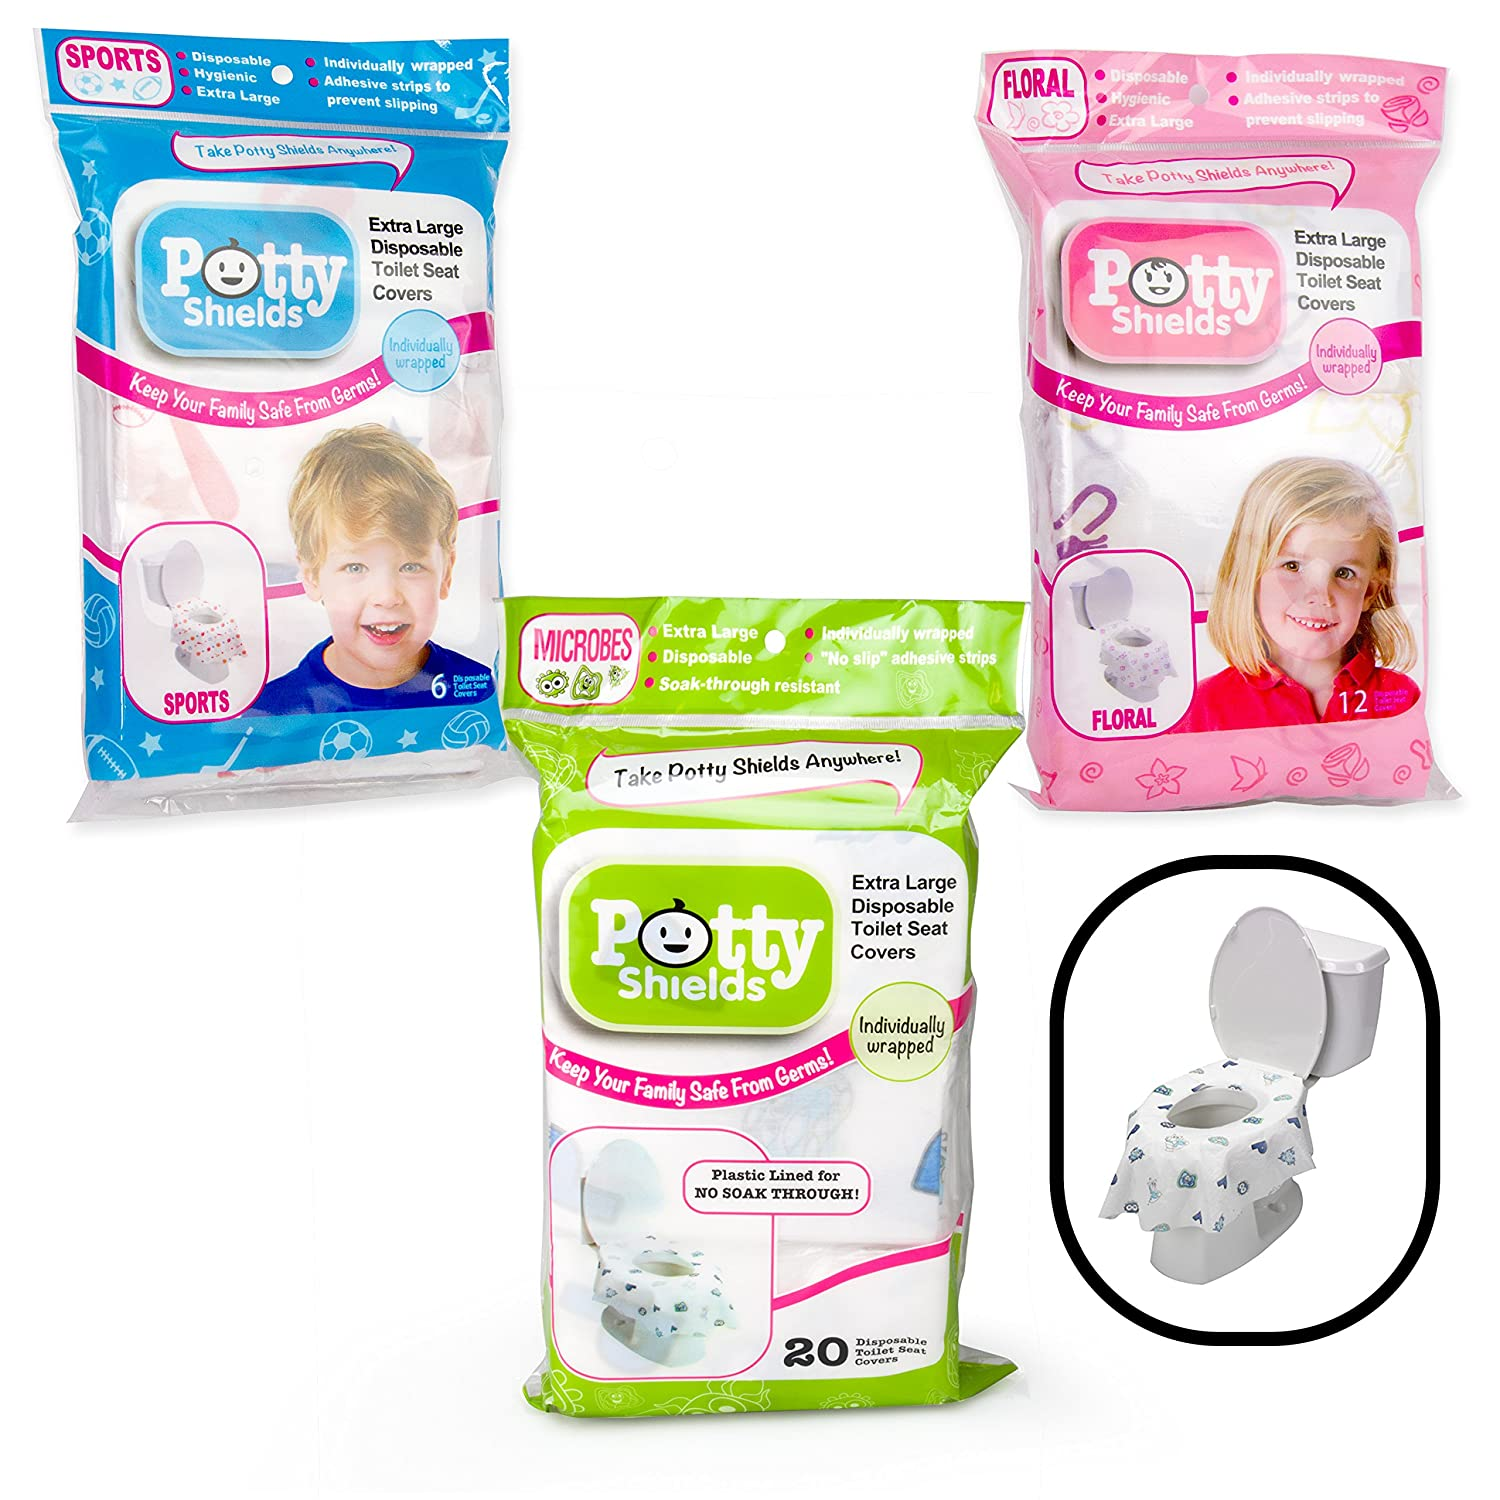 Toilet Seat Covers- Disposable XL Potty Seat Covers, Individually Wrapped by Potty Shields - Extra-Large, No Slip (Sports -20 Pack)